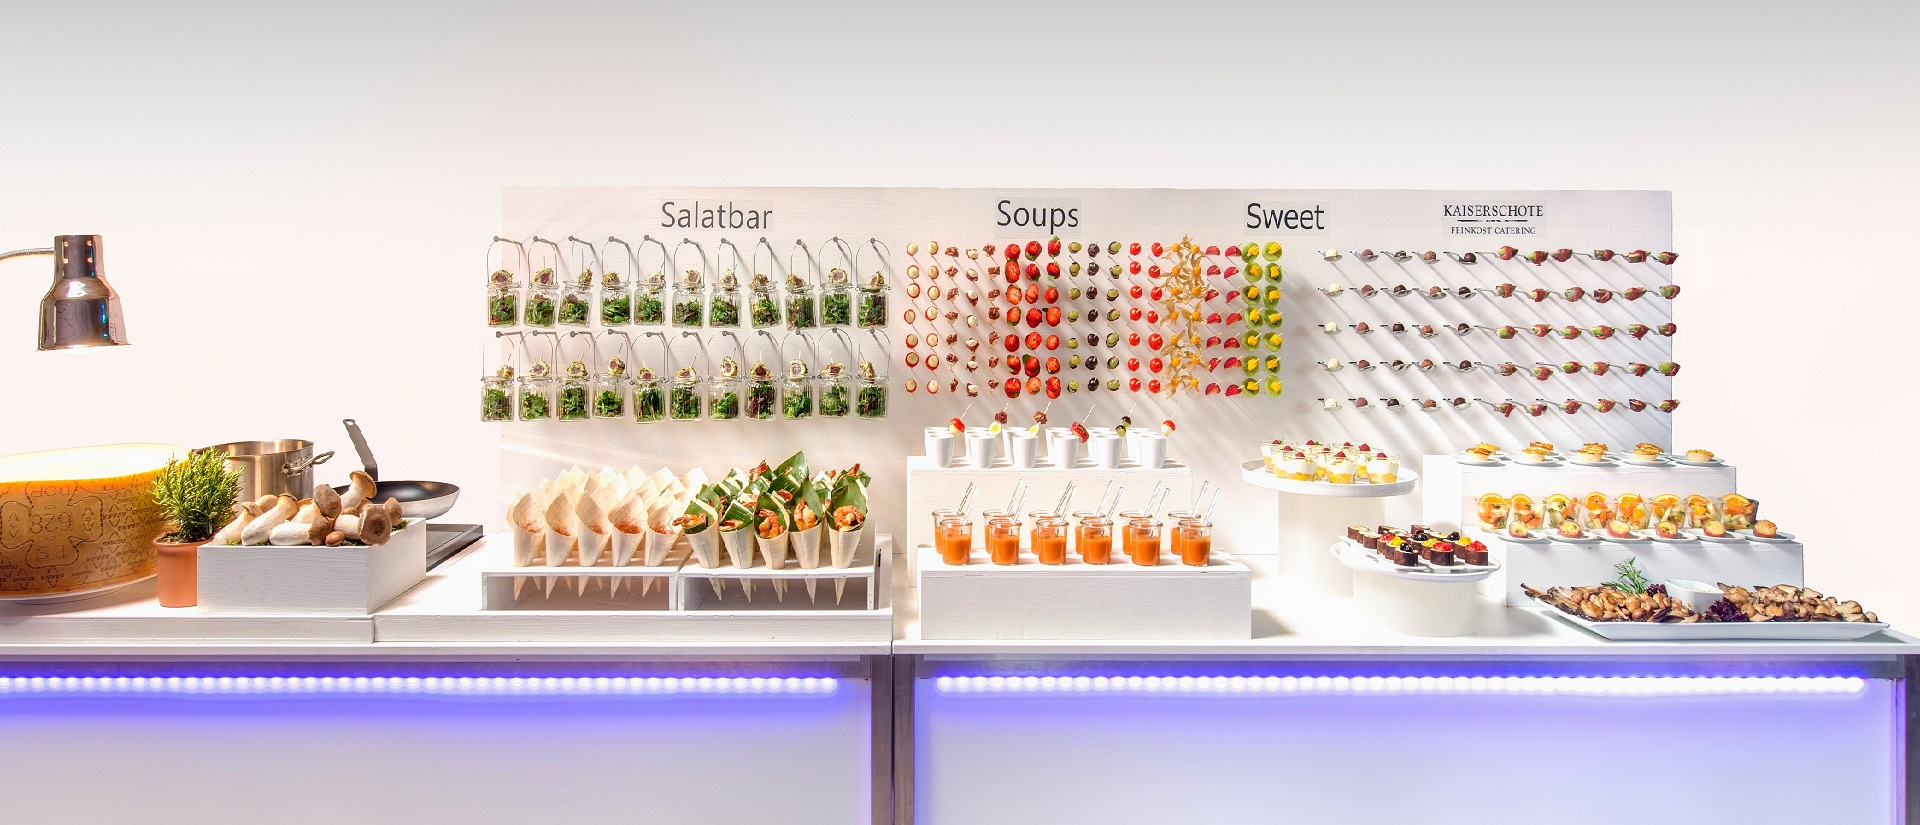 corporate_catering_buehne_3D-frontal